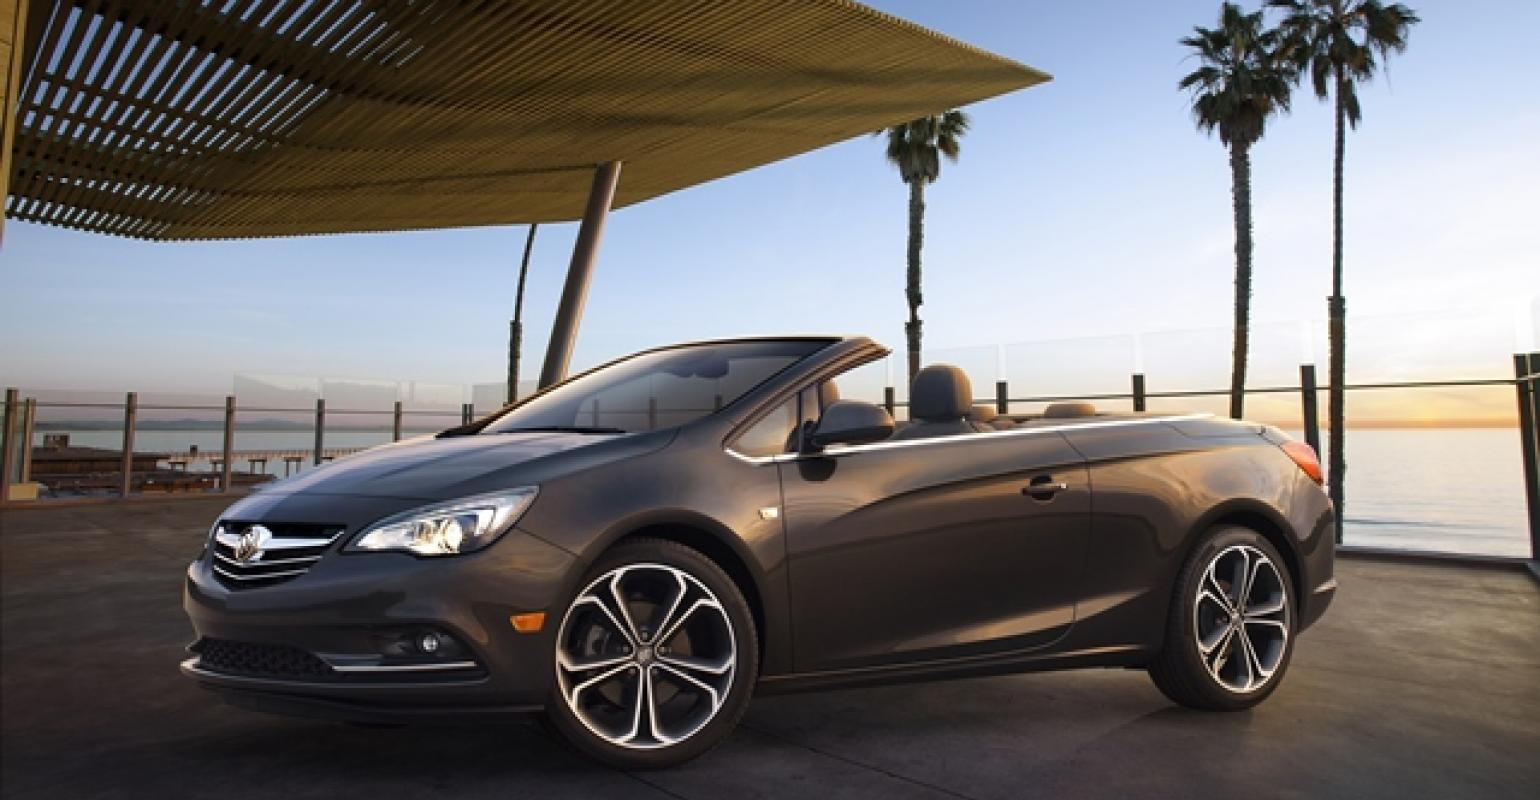 Buickrsquos New Convertible Looks Sharp Top Down